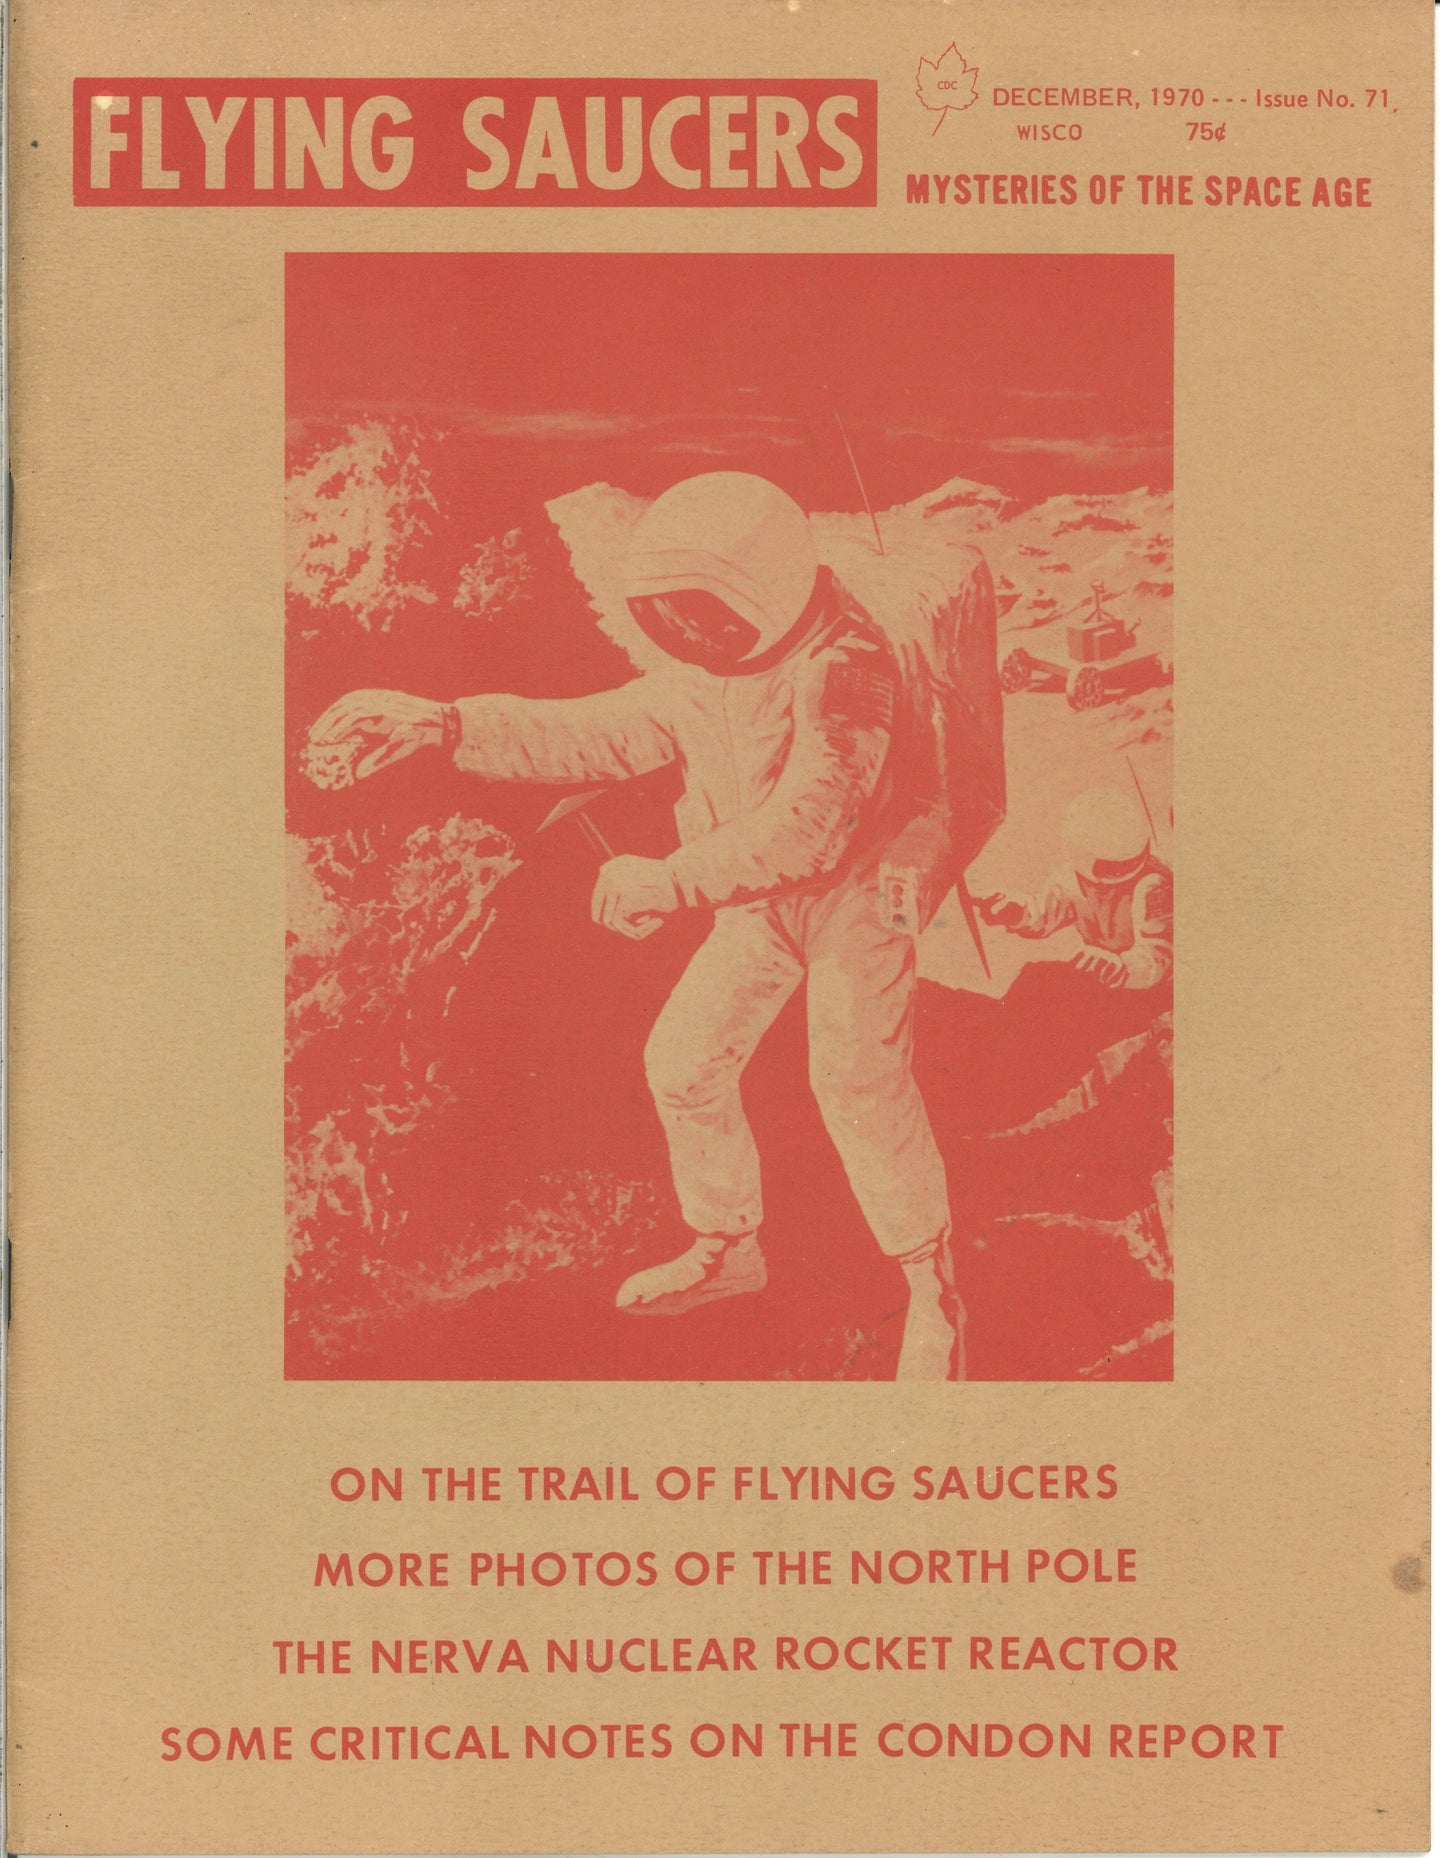 Flying Saucers Issue No. 71: Mysteries of the Space Age